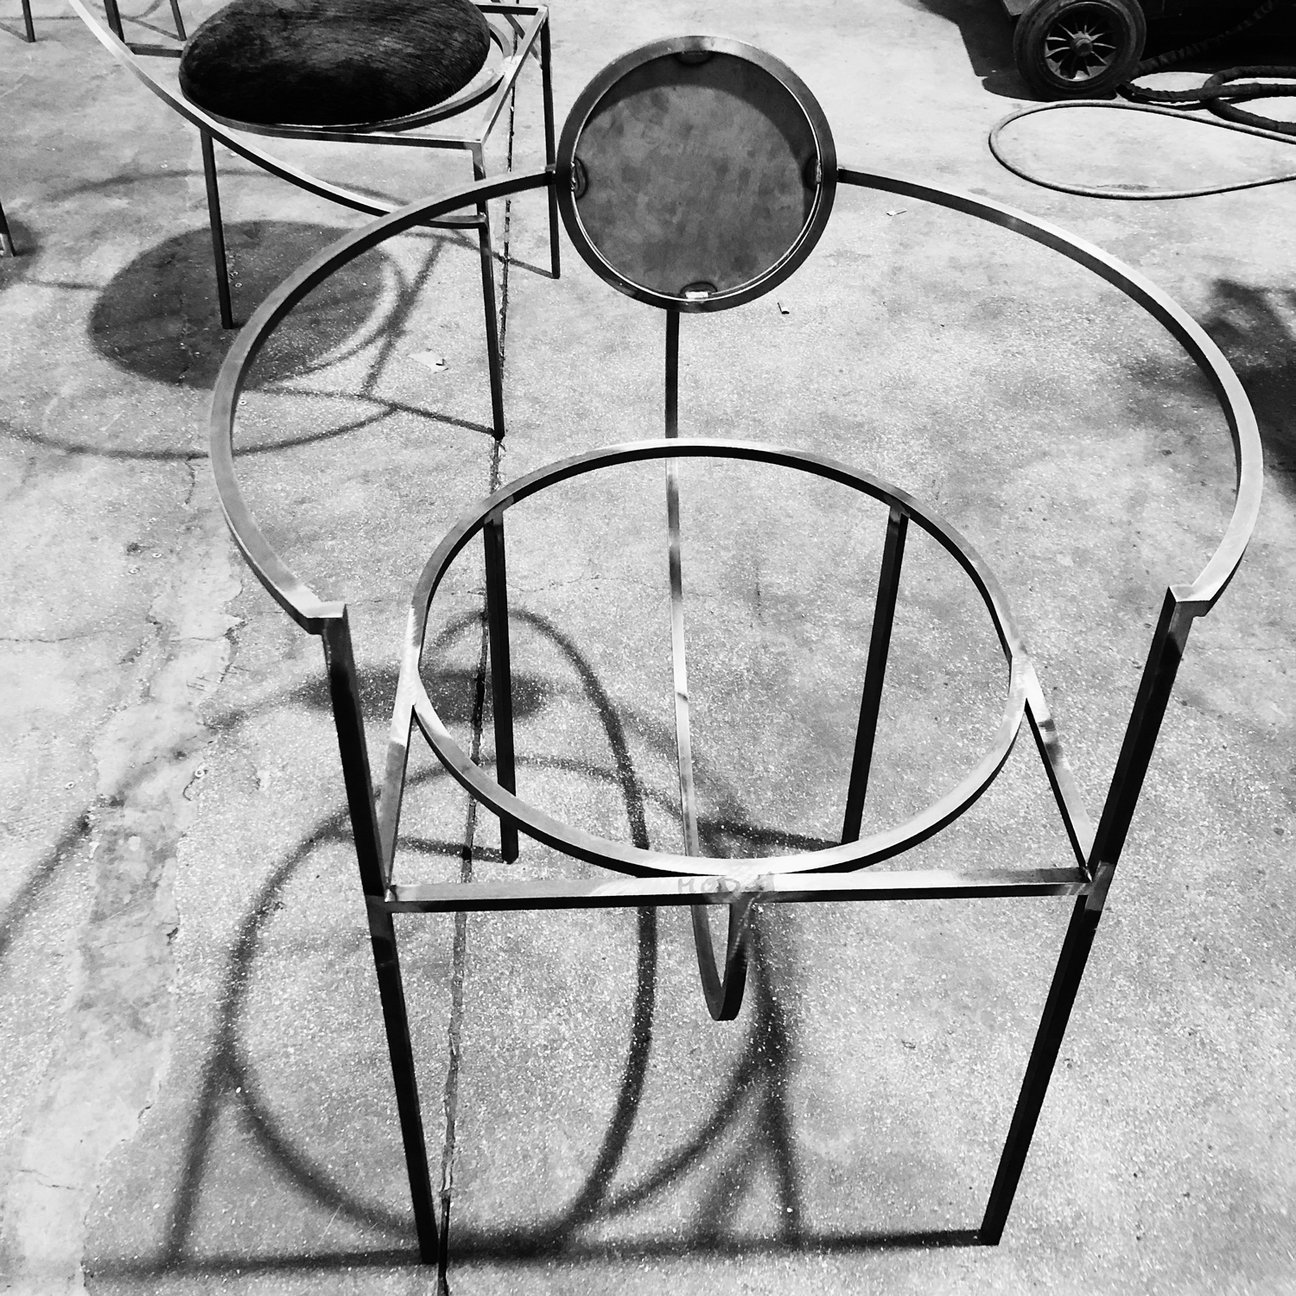 workshop_lunar-chair1_9a199486-4c7a-4670-ad16-4e8fef007cfb_1296x.jpg